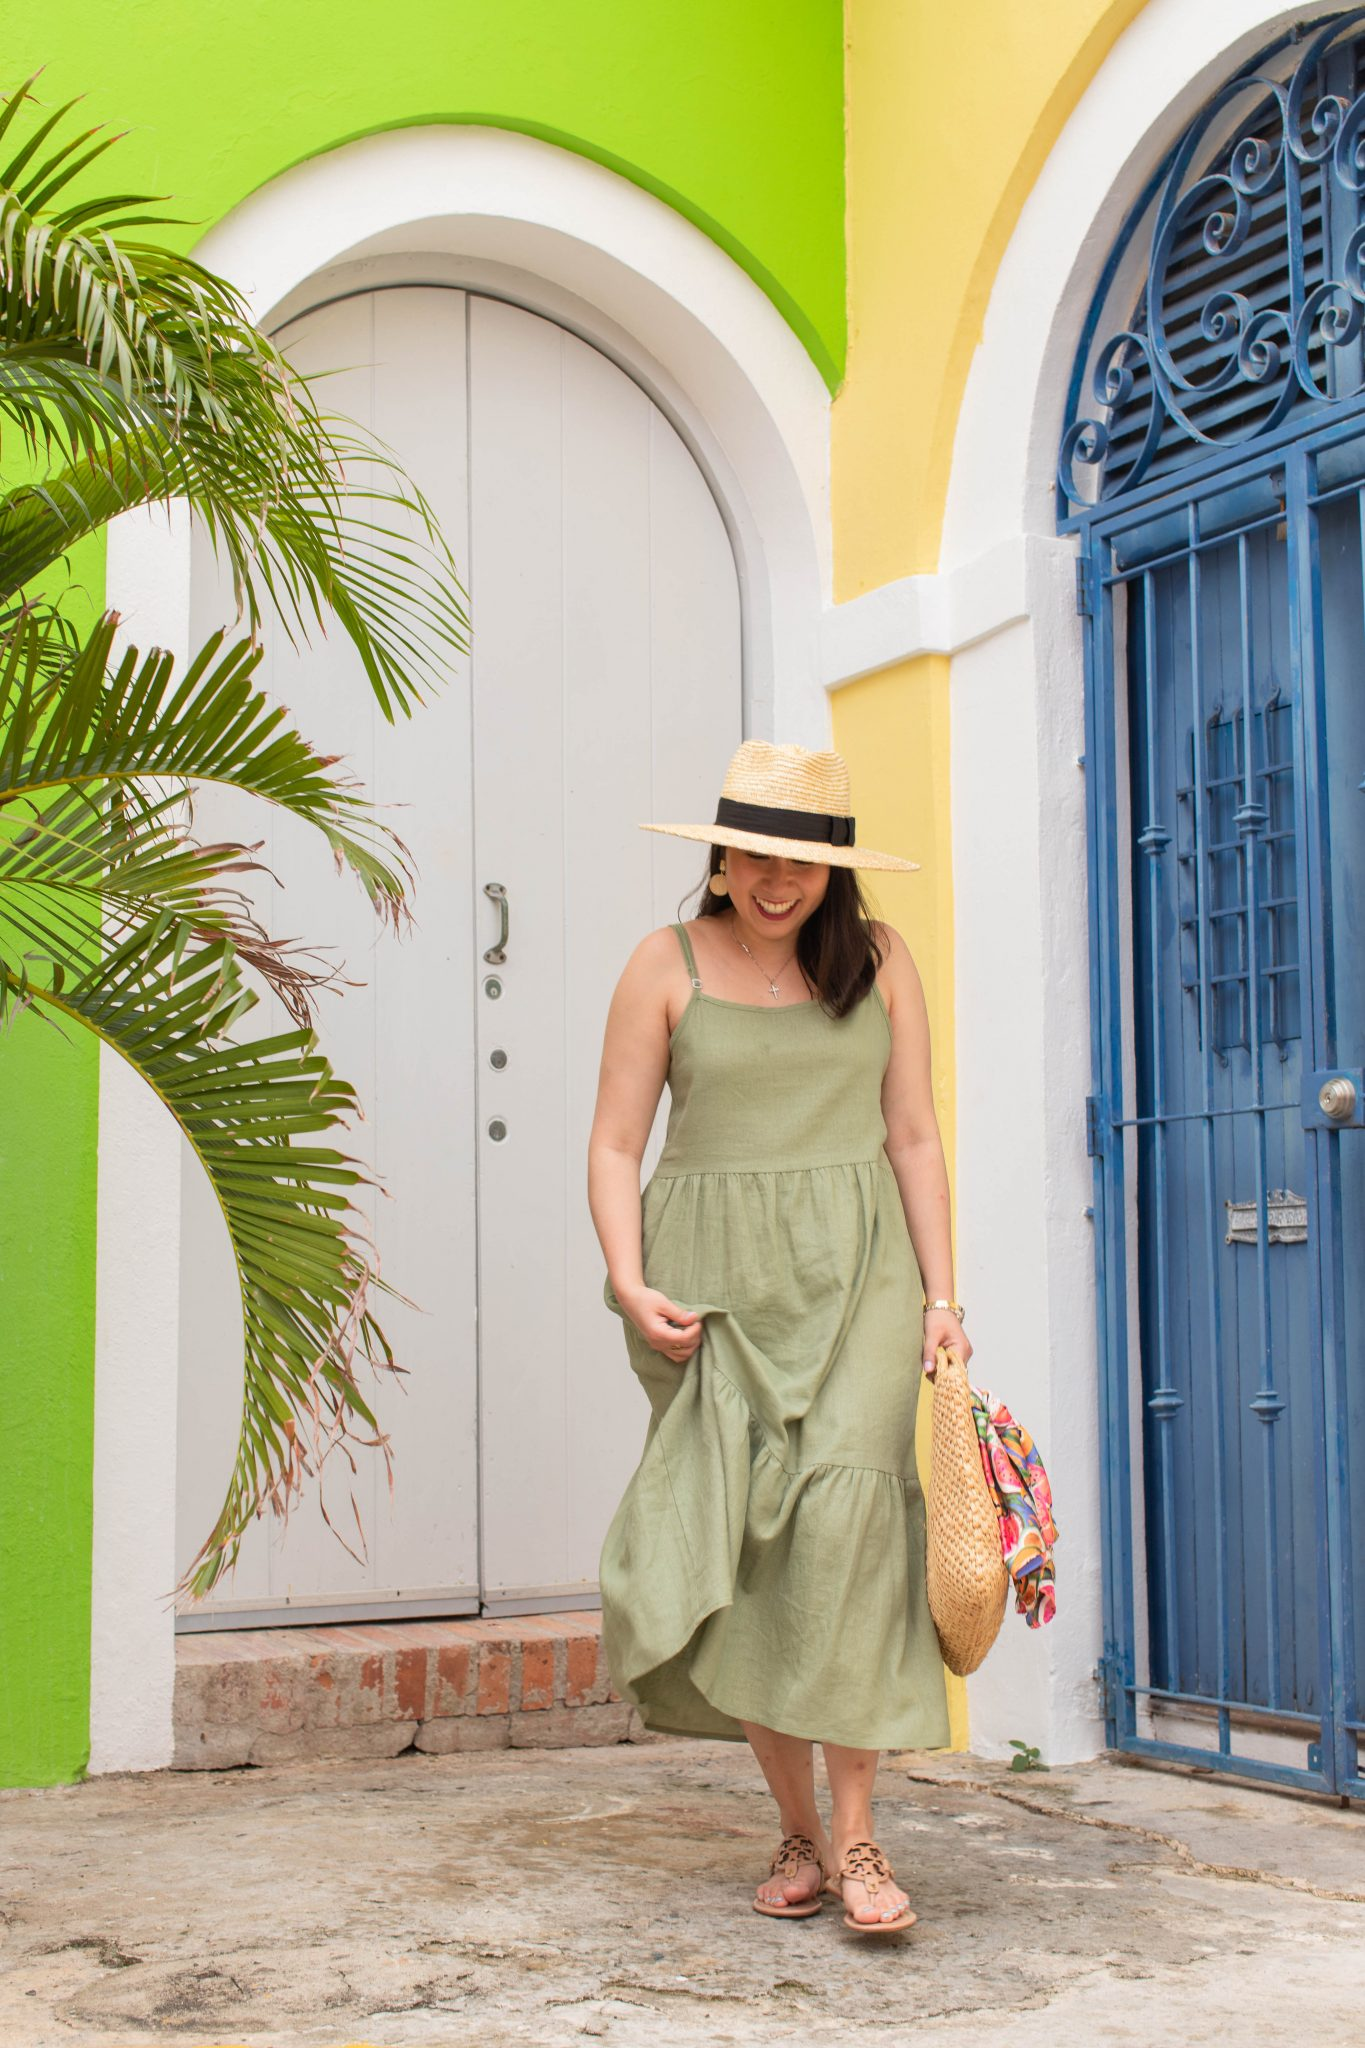 5 Essential Tips To Create Original Content And Grow Your Brand by popular New York influencer blog, Life Laugh Linda: image of a woman standing outside in front of a yellow and neon green building with a blue door and wearing a green maxi dress, brown sandals, straw sunhat, and holding a straw bag with a scarf tied on one of the handles.